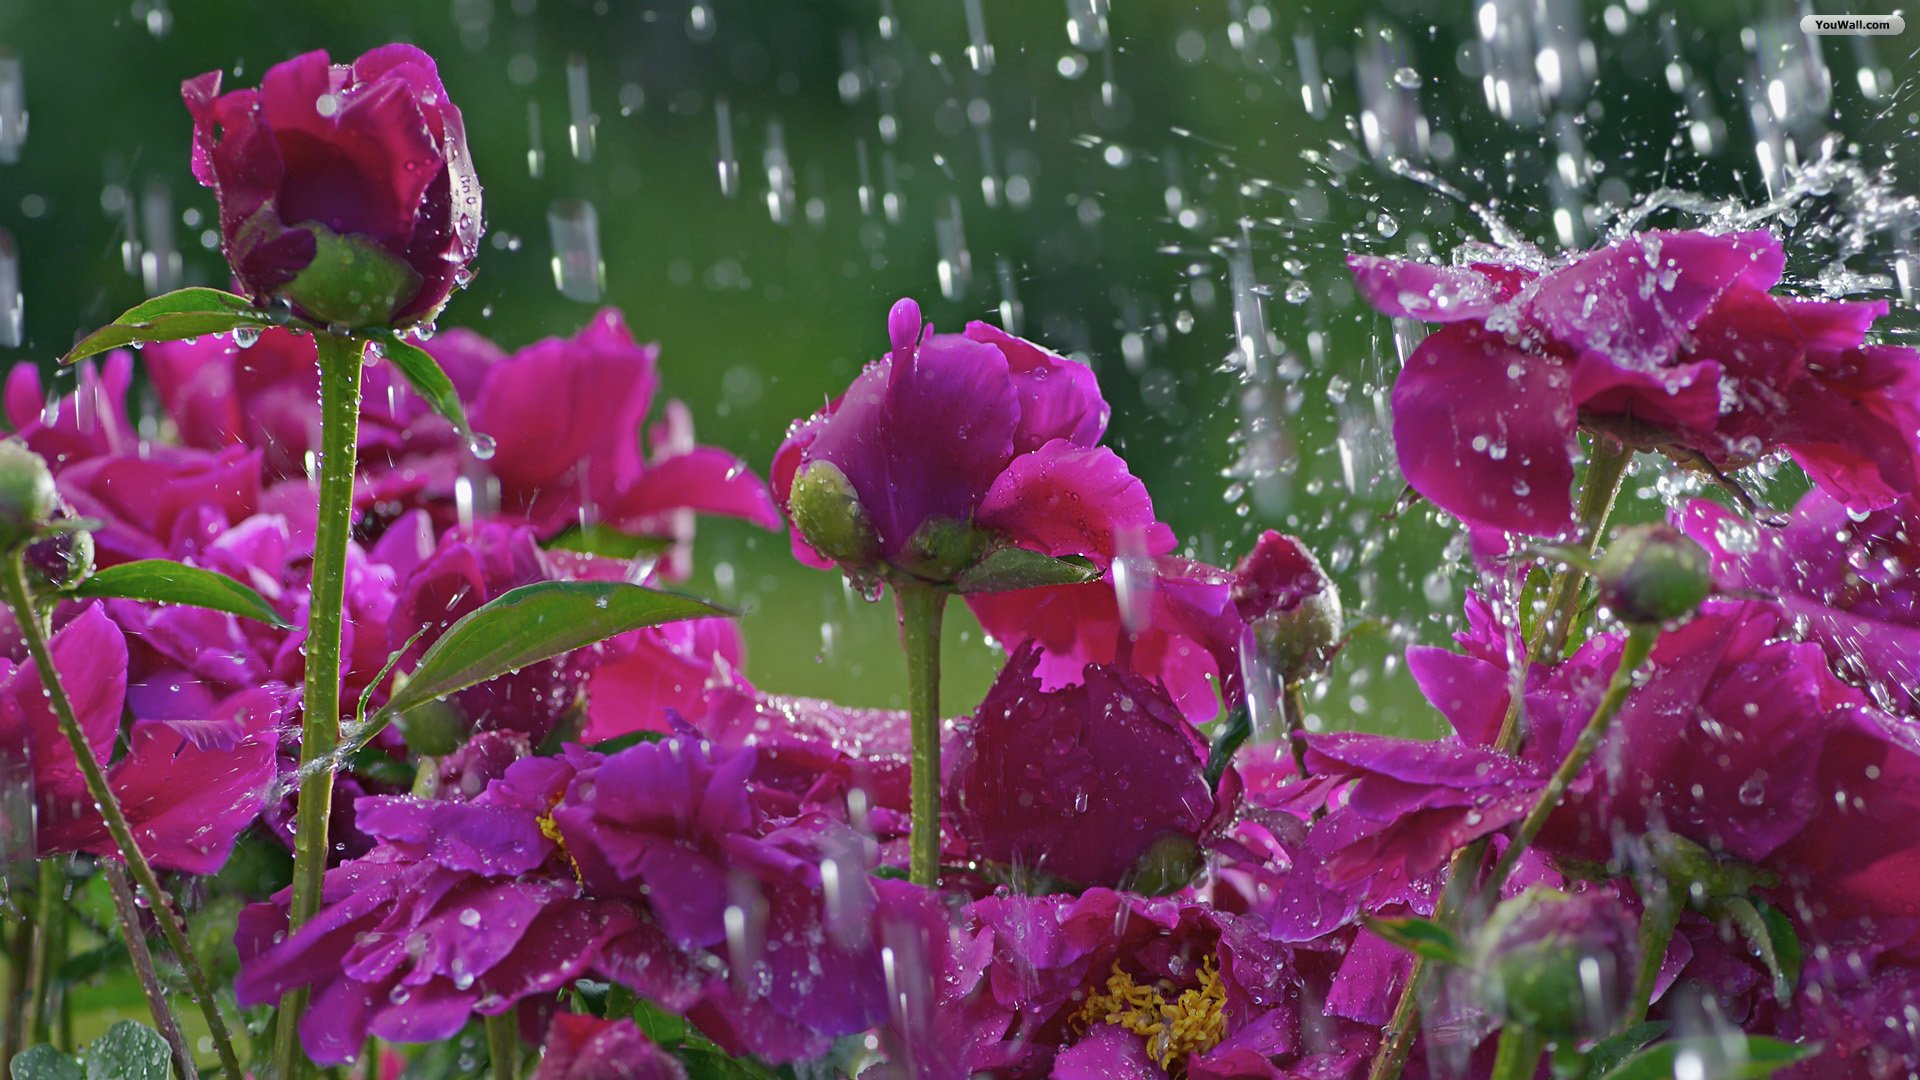 Spring Rain Wallpapers High Definition Download SubWallpaper 1920x1080